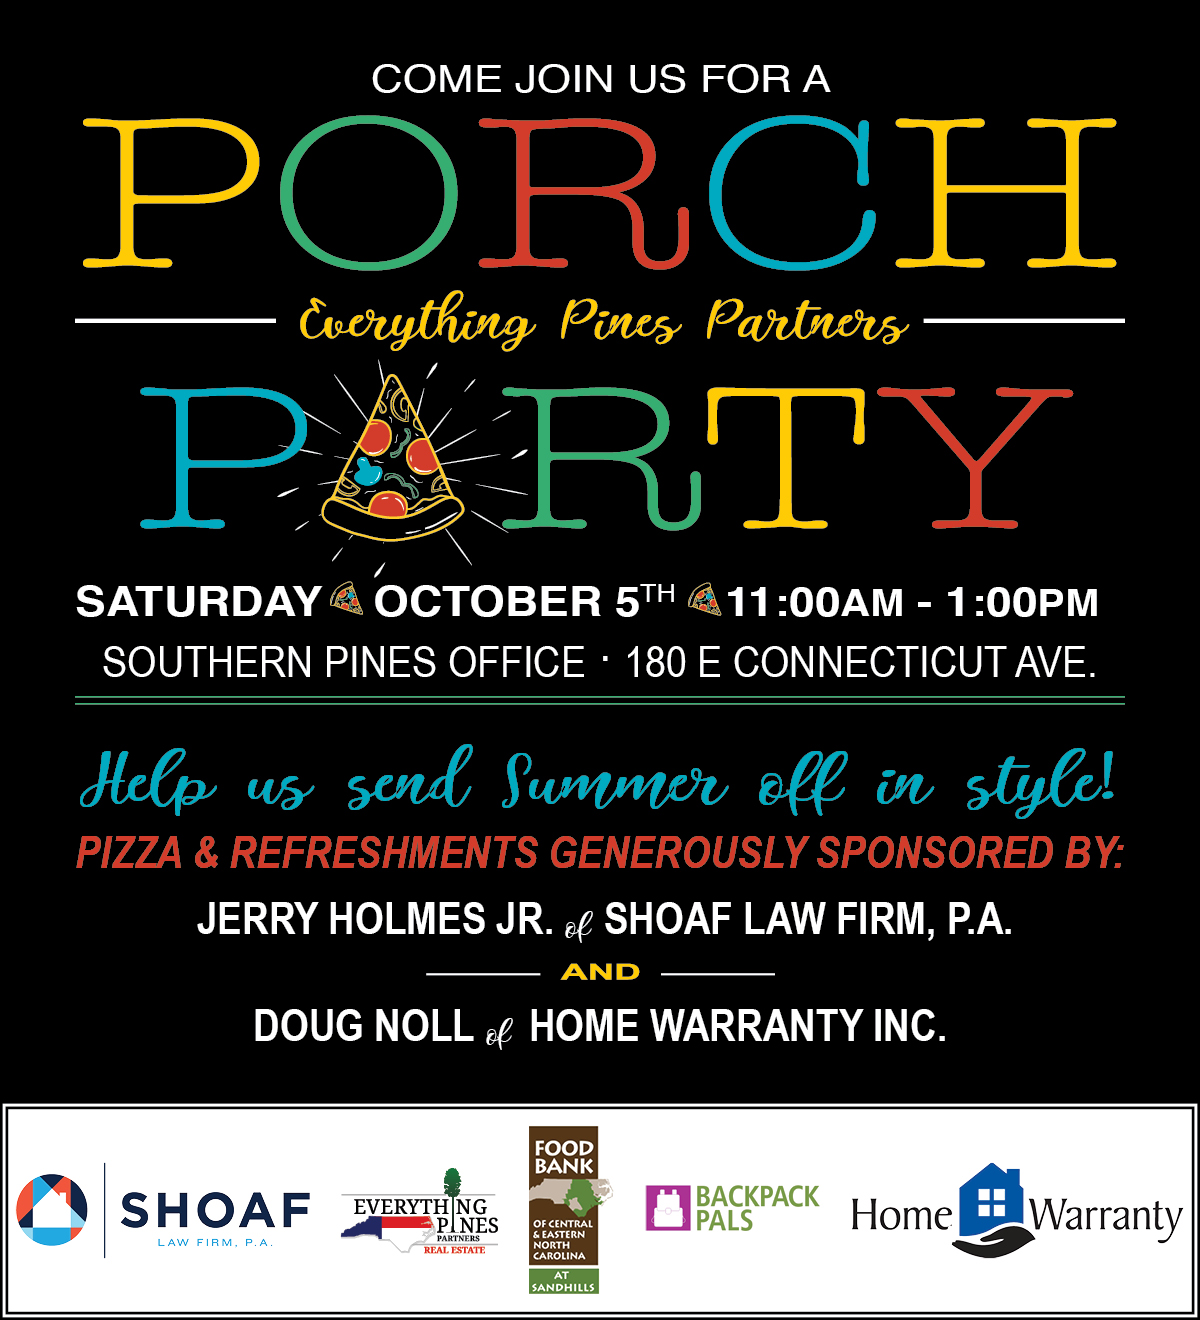 Pizza Party Invite OCT19 food bank logos